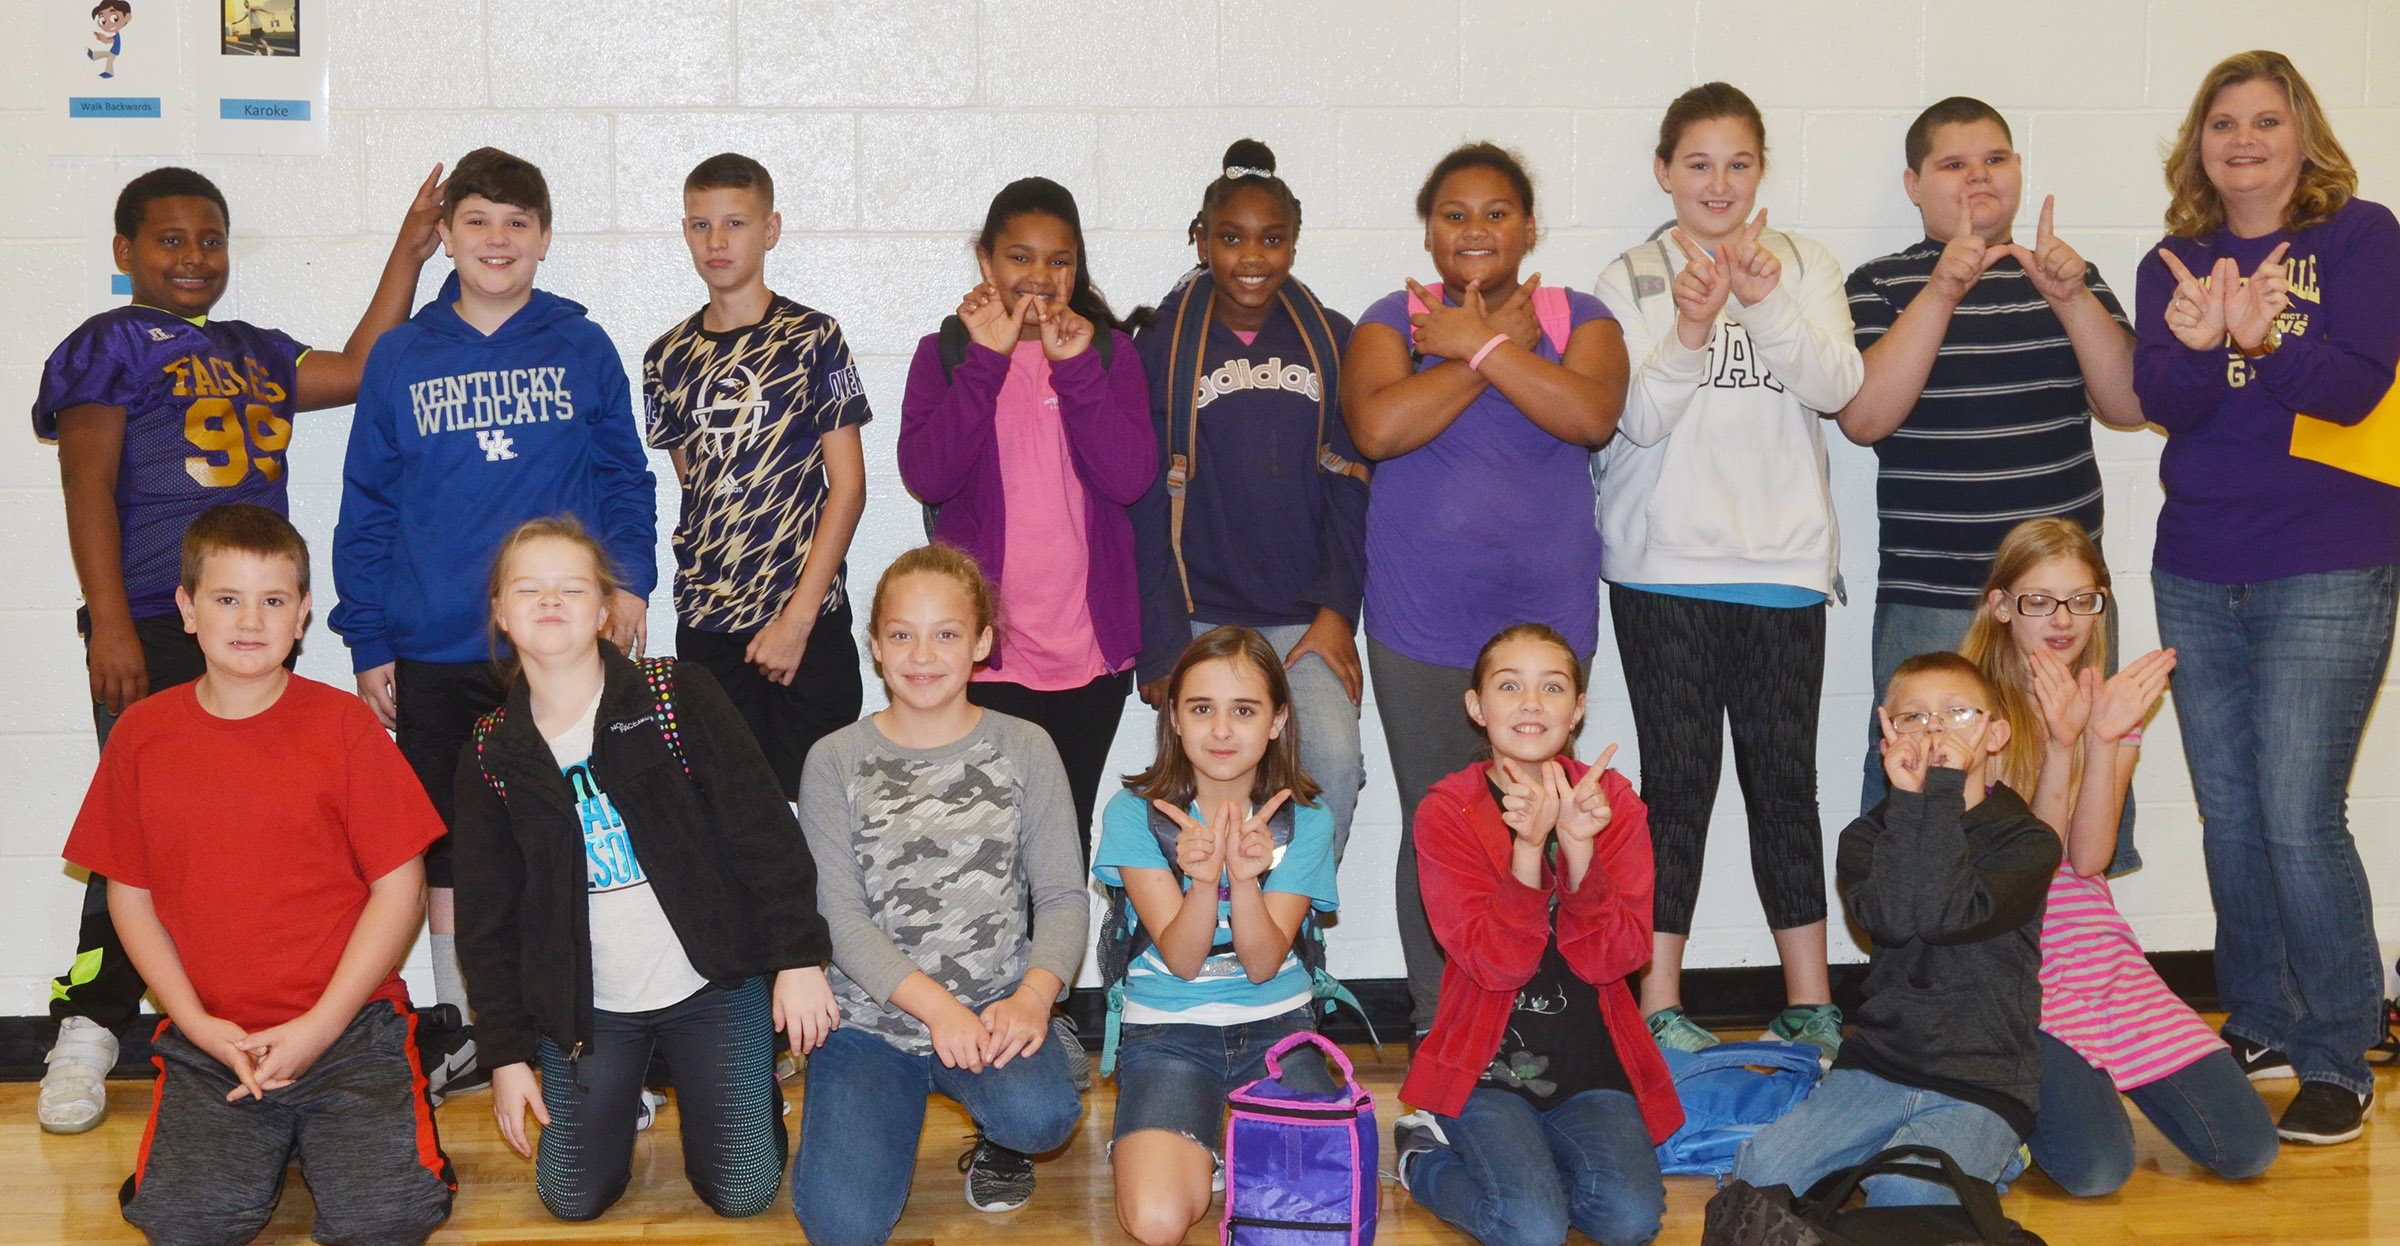 Tammy Hash's fifth-grade leadership class recently won the school's four-week attendance challenge, with a rate of 97 percent. Students will be rewarded with a pizza or donut party. From left, front, are Kaleb Martin, Miley Hash, Deanna Reardon, Anna Floyd, Harley Couch-Allen, Tyler Haulk and Payton Releford. Back, KeKe Miller, Andrew Mardis, Rowan Petett, Jaclyn Jackson, Ta'Zaria Owens, Dezarae Washington, Riley Newton, Steven Miller and Hash.